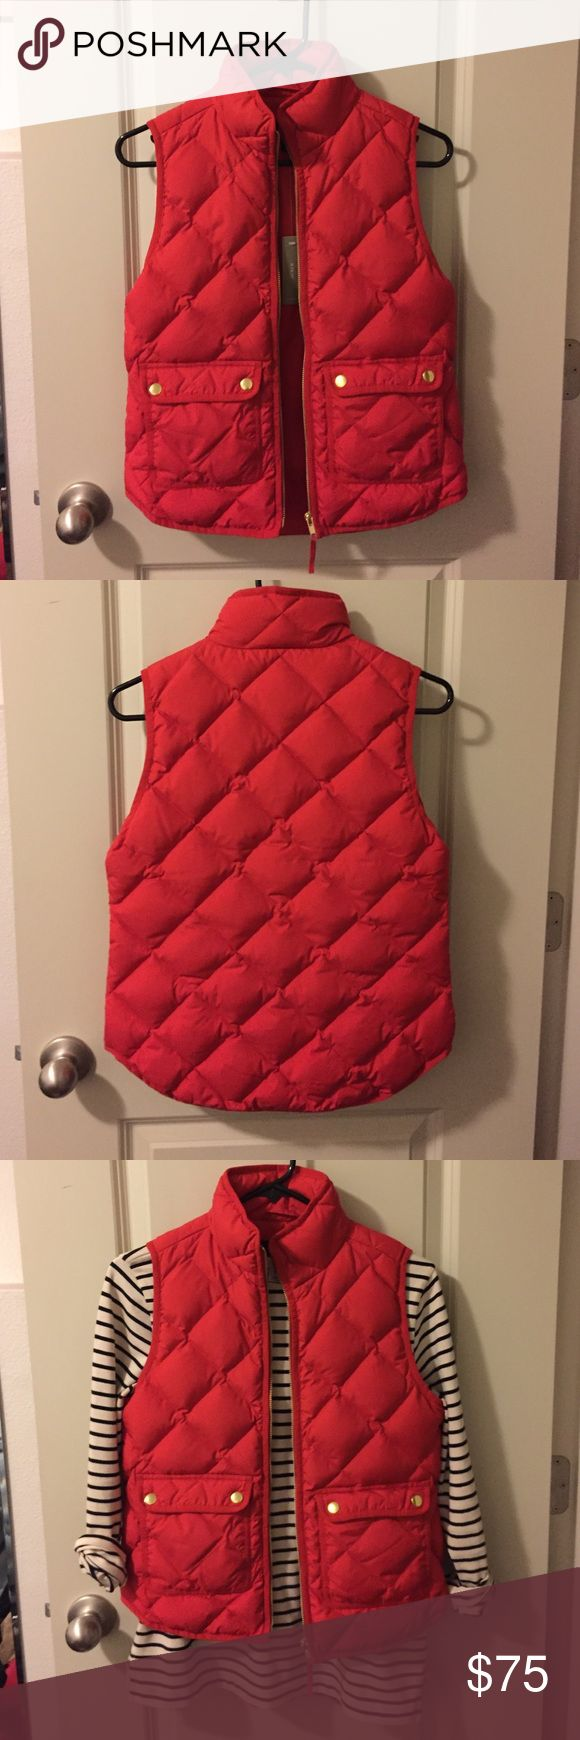 """J Crew Excursion quilted down vest I love this vest but it's too small on me so it's never been worn, it even still has the tag! It's really comfortable and the red is a true red, J Crew called it """"dark poppy"""". J. Crew Jackets & Coats Vests"""